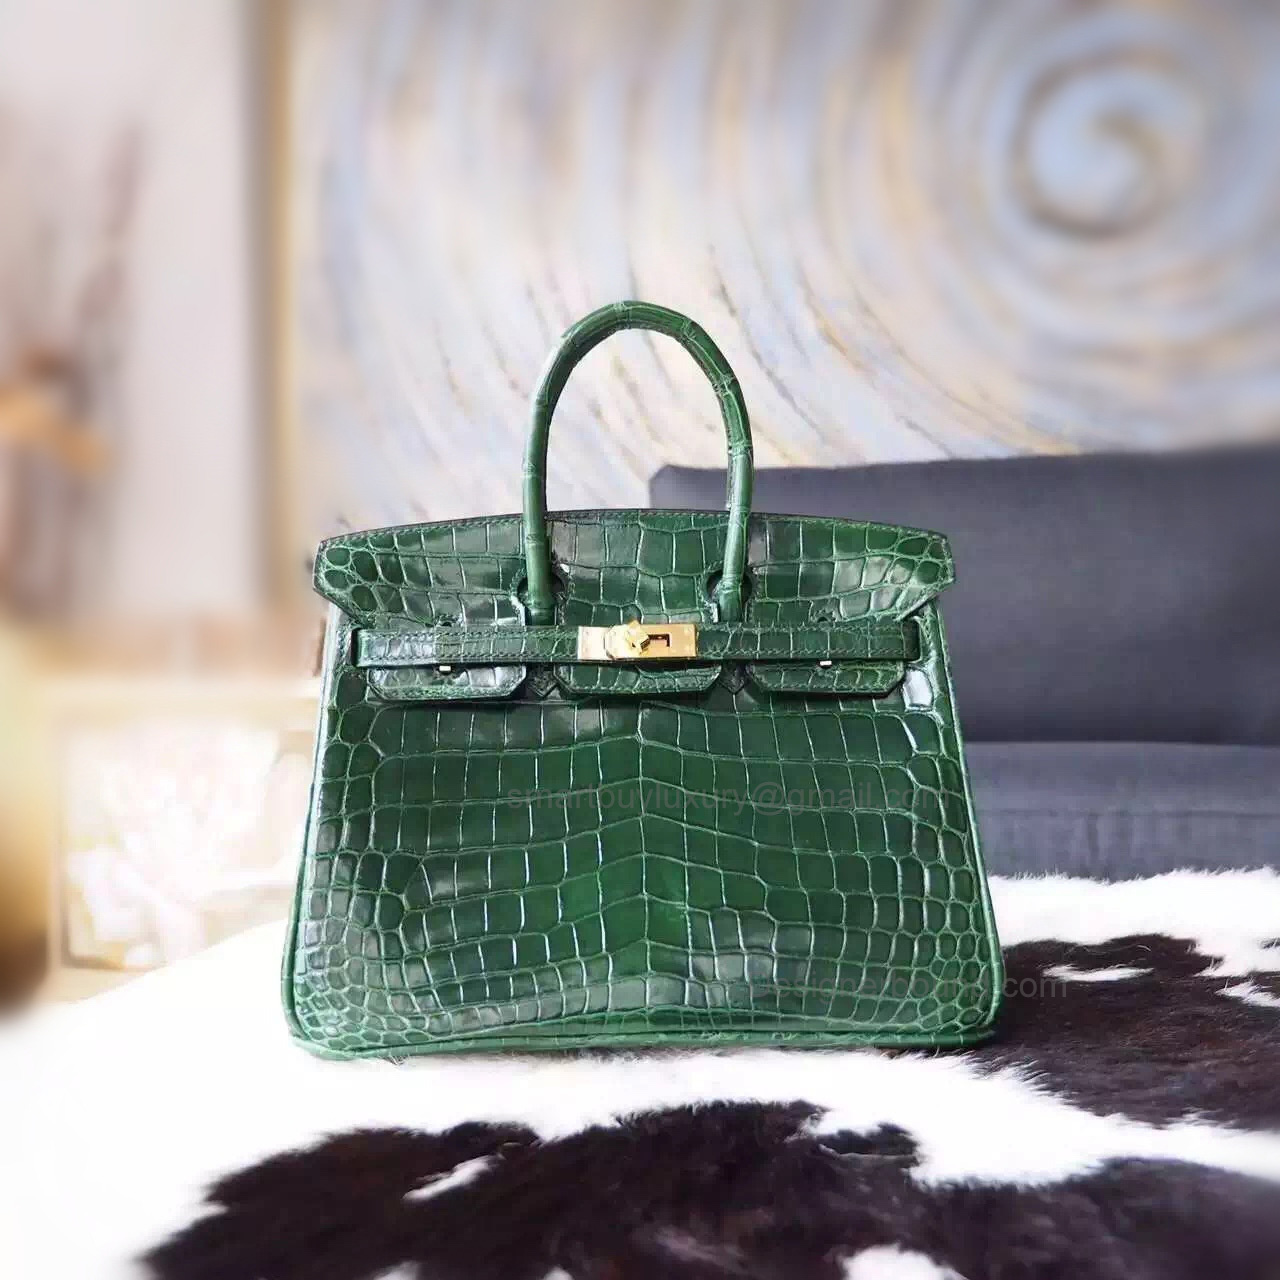 7afb4408dd Hand Stitched Hermes Birkin 25 Bag in ck67 Vert Fonce Shining Niloticus  Croc GHW